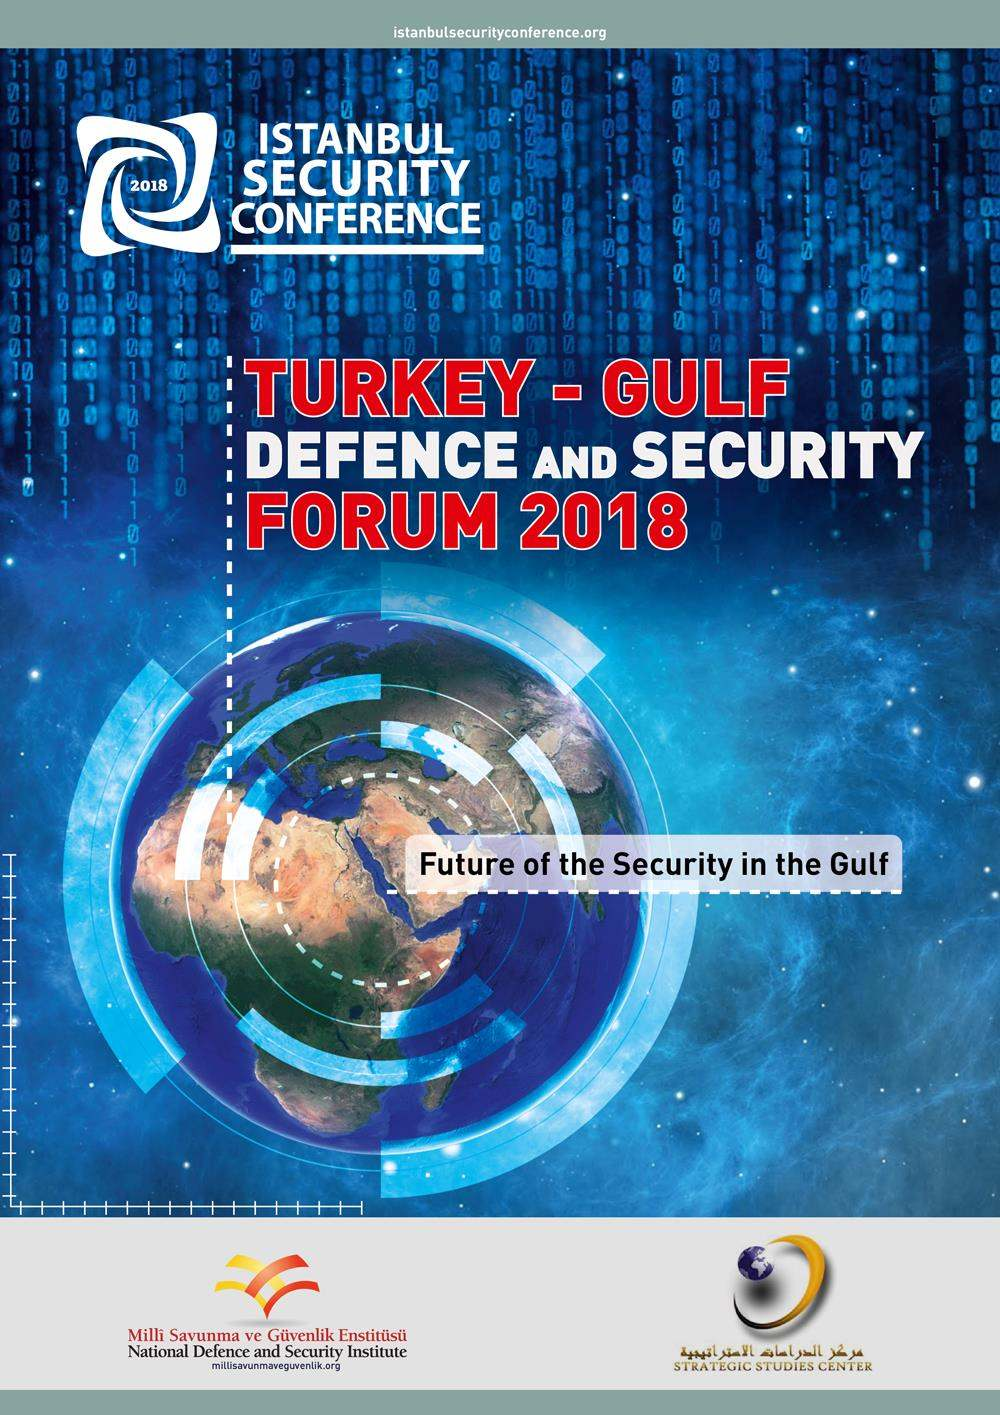 Turkey - Gulf Defence and Security Forum 2018 Prep. Meeting